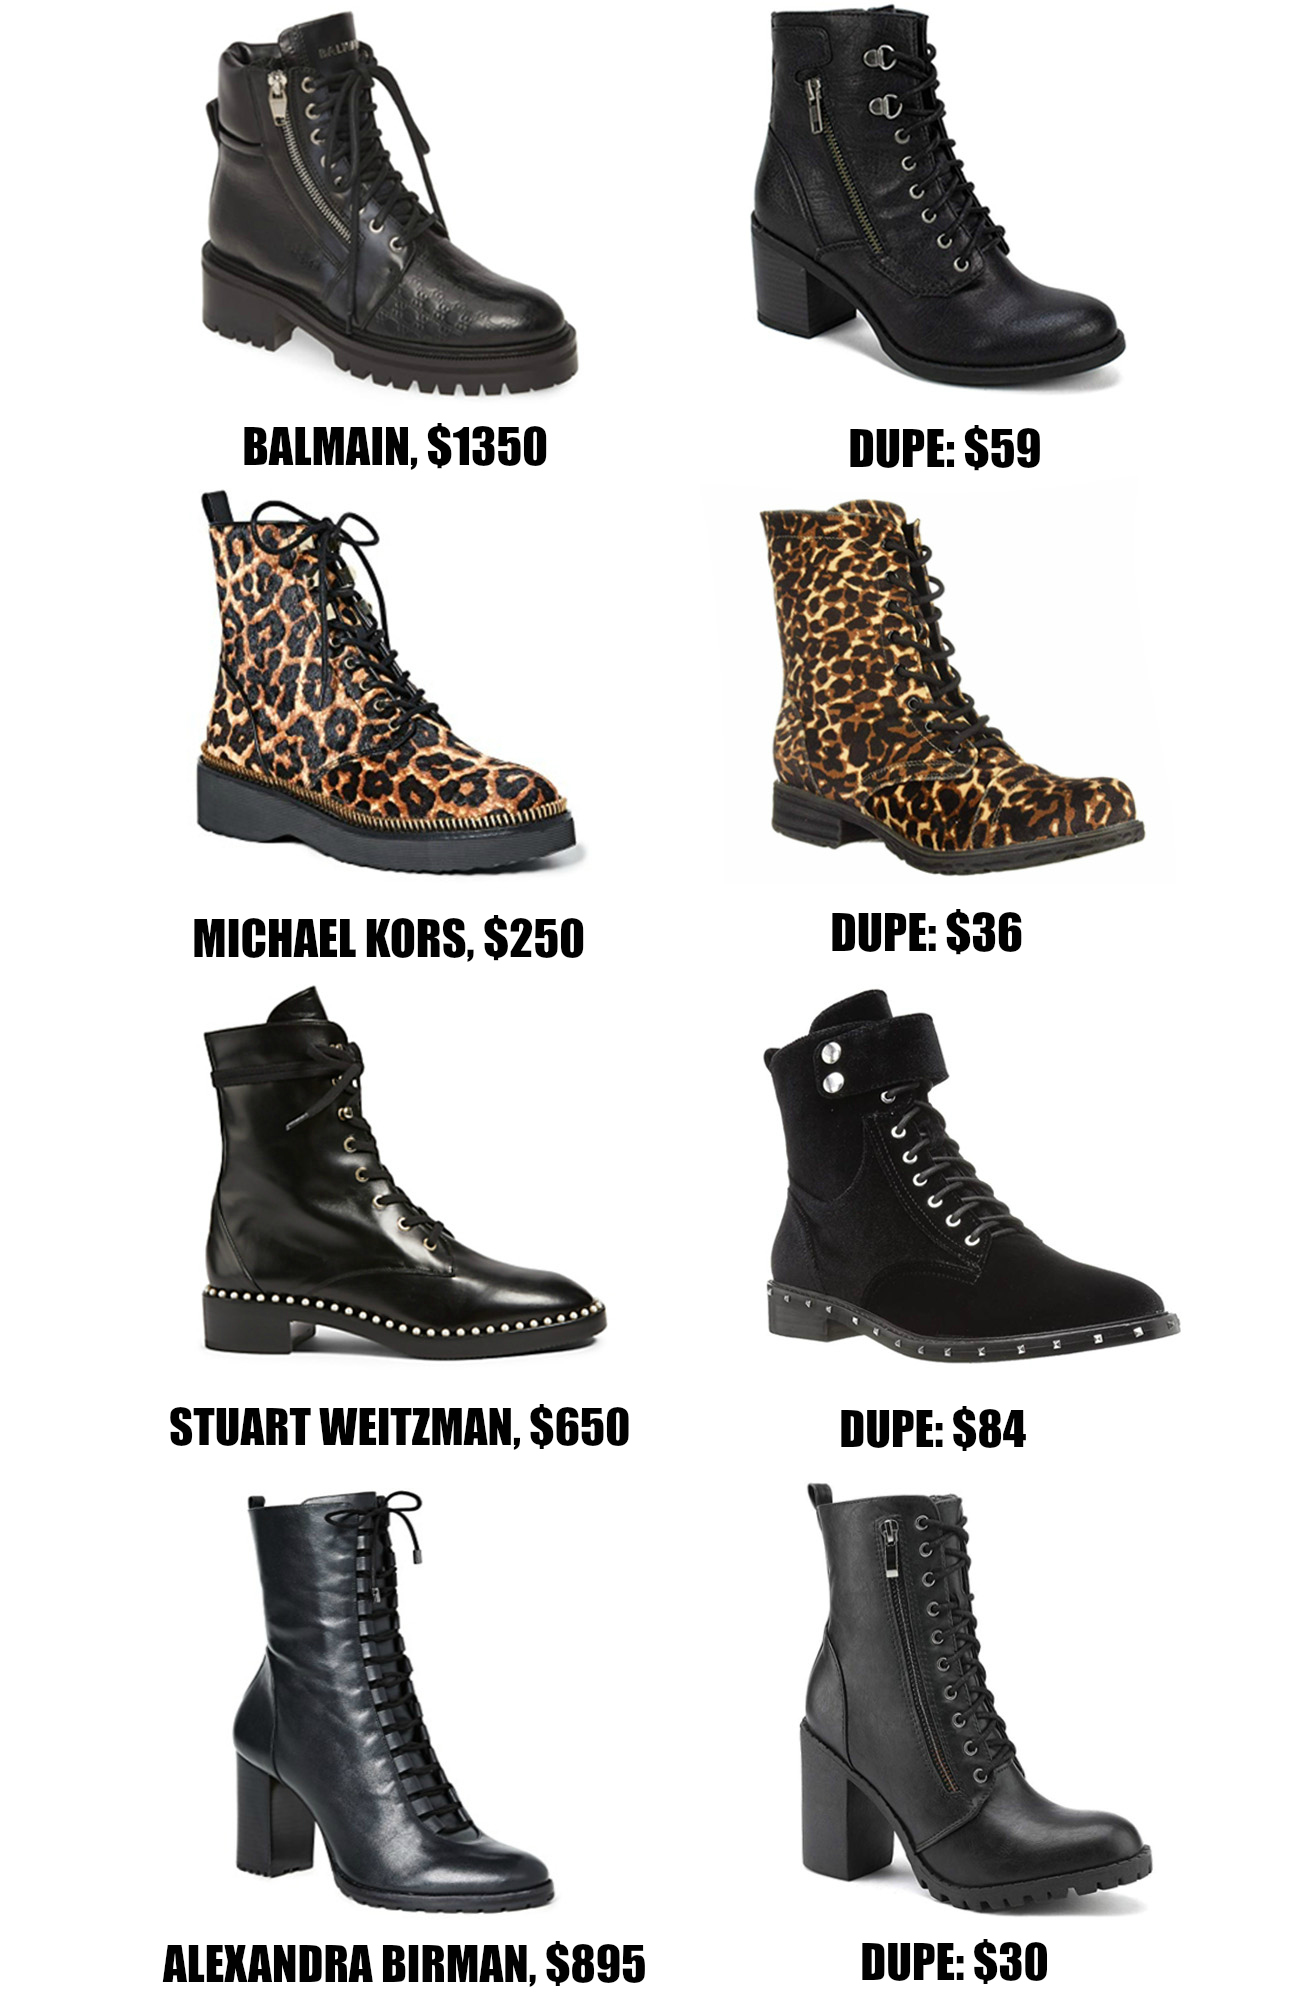 Beauty fashion blogger mash Elle | boots | fall boots | dupes  | cheetah print dupes